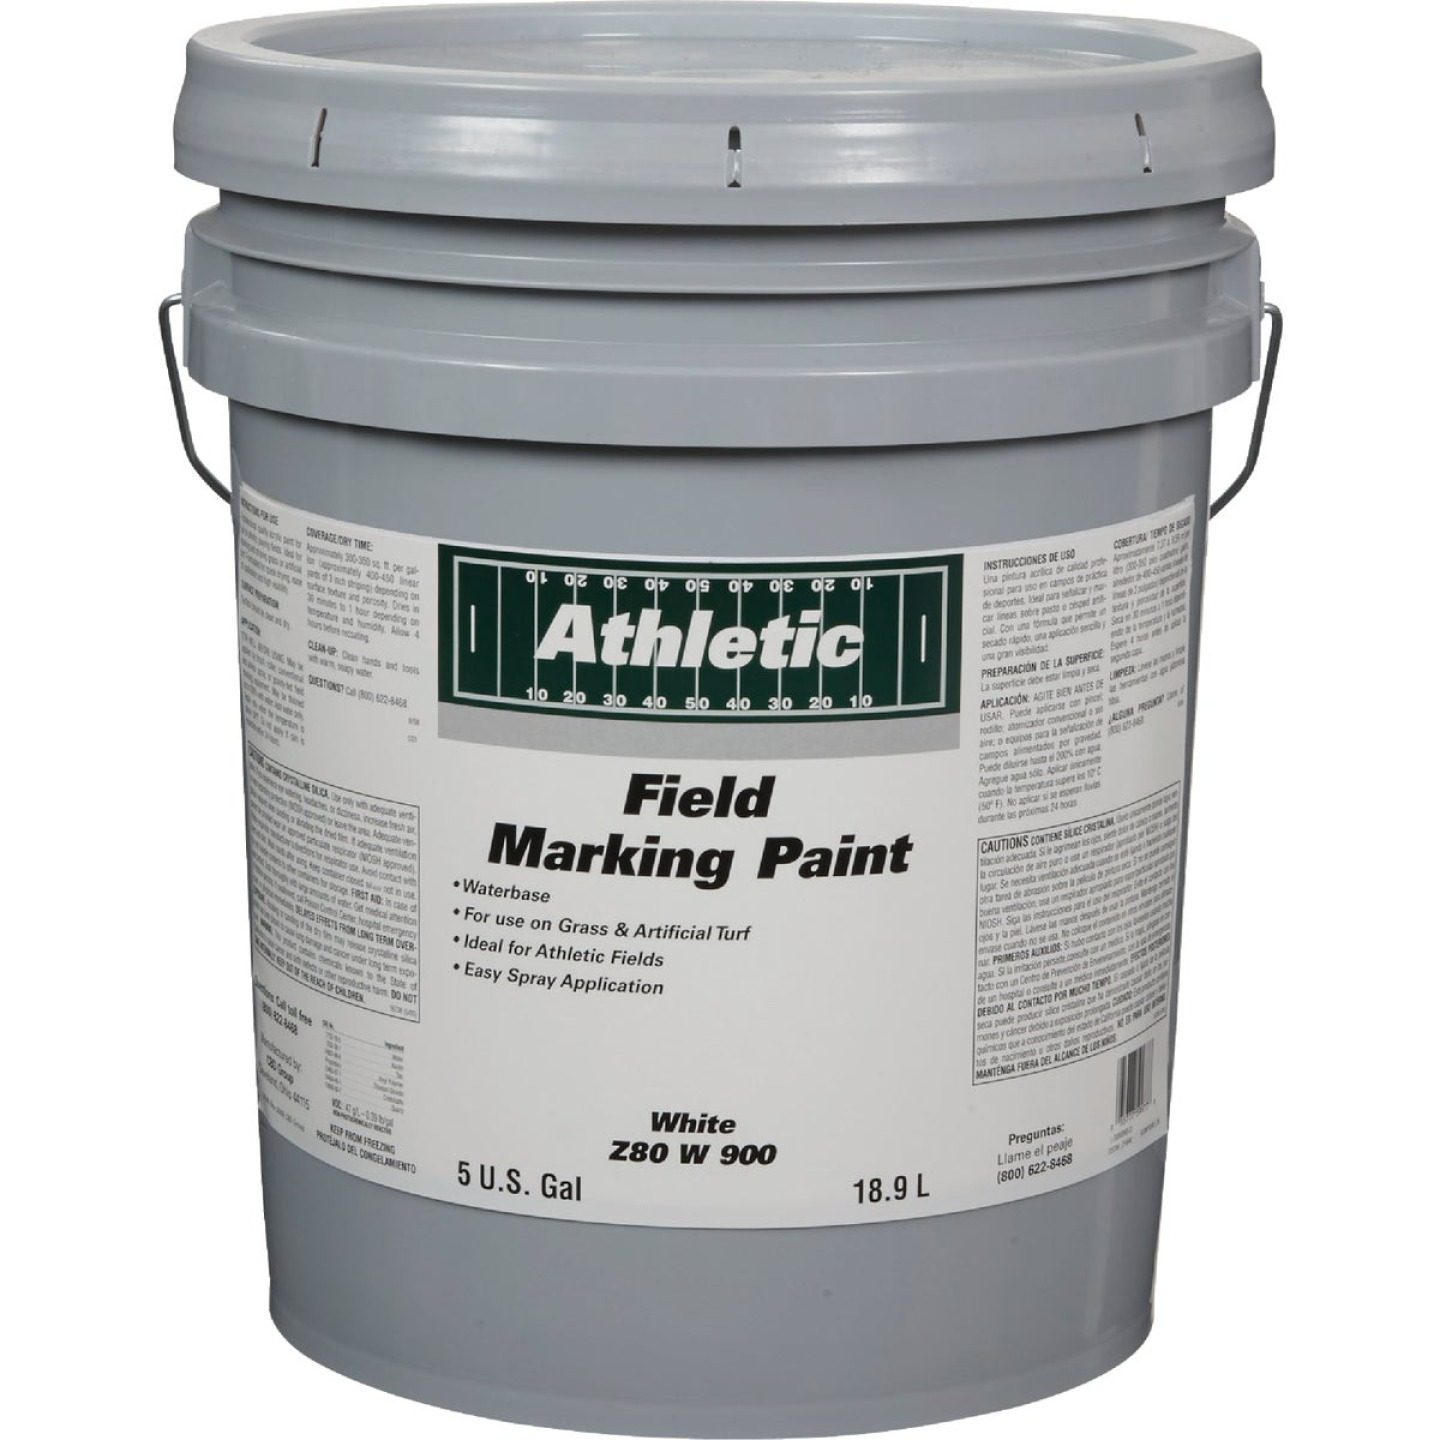 Field Marking Paint White 5 Gal Acrylic Flat Field Marking Paint Image 1